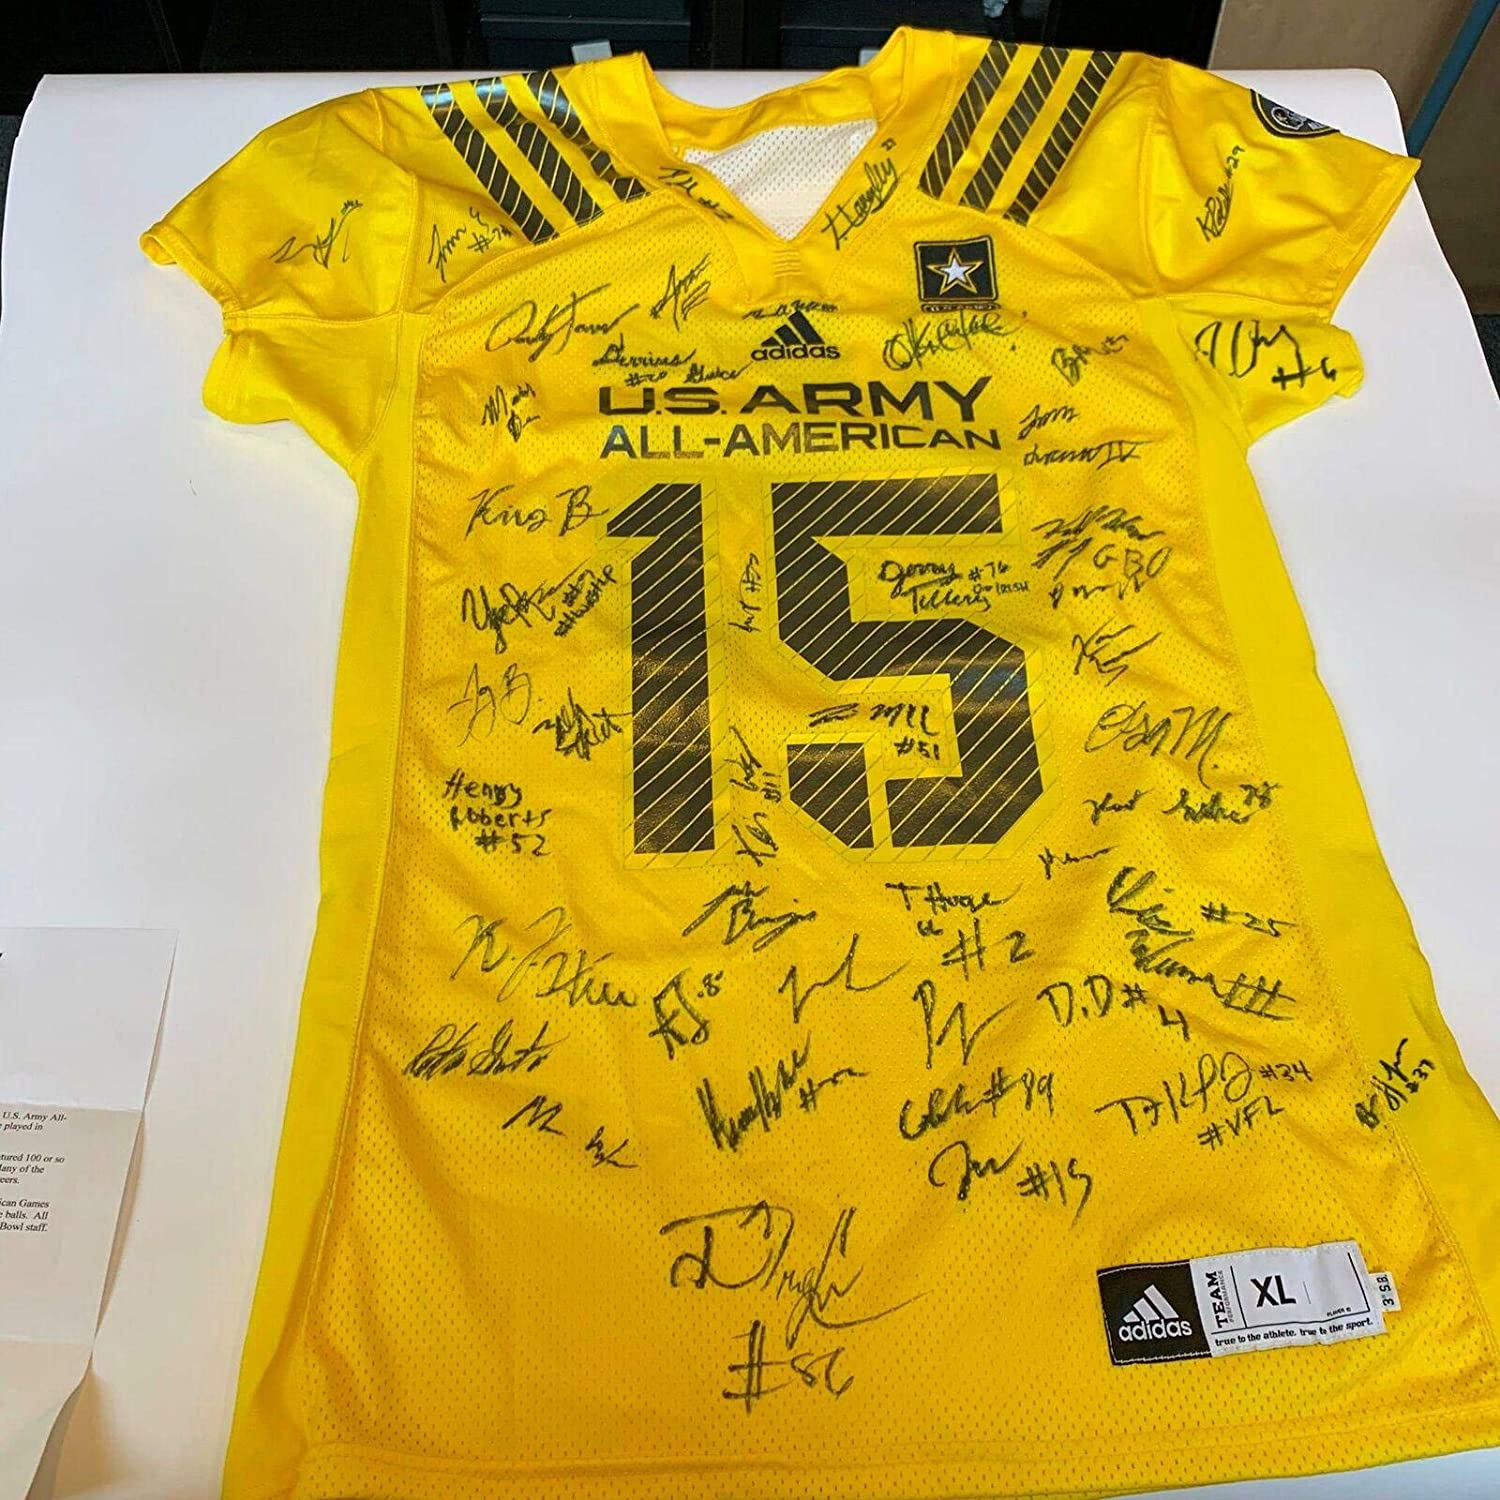 2015 U.S. Army All-American Bowl Team-Signed Jersey 45 Sigs Drew Lock COA - JSA Certified - Autographed College Jerseys